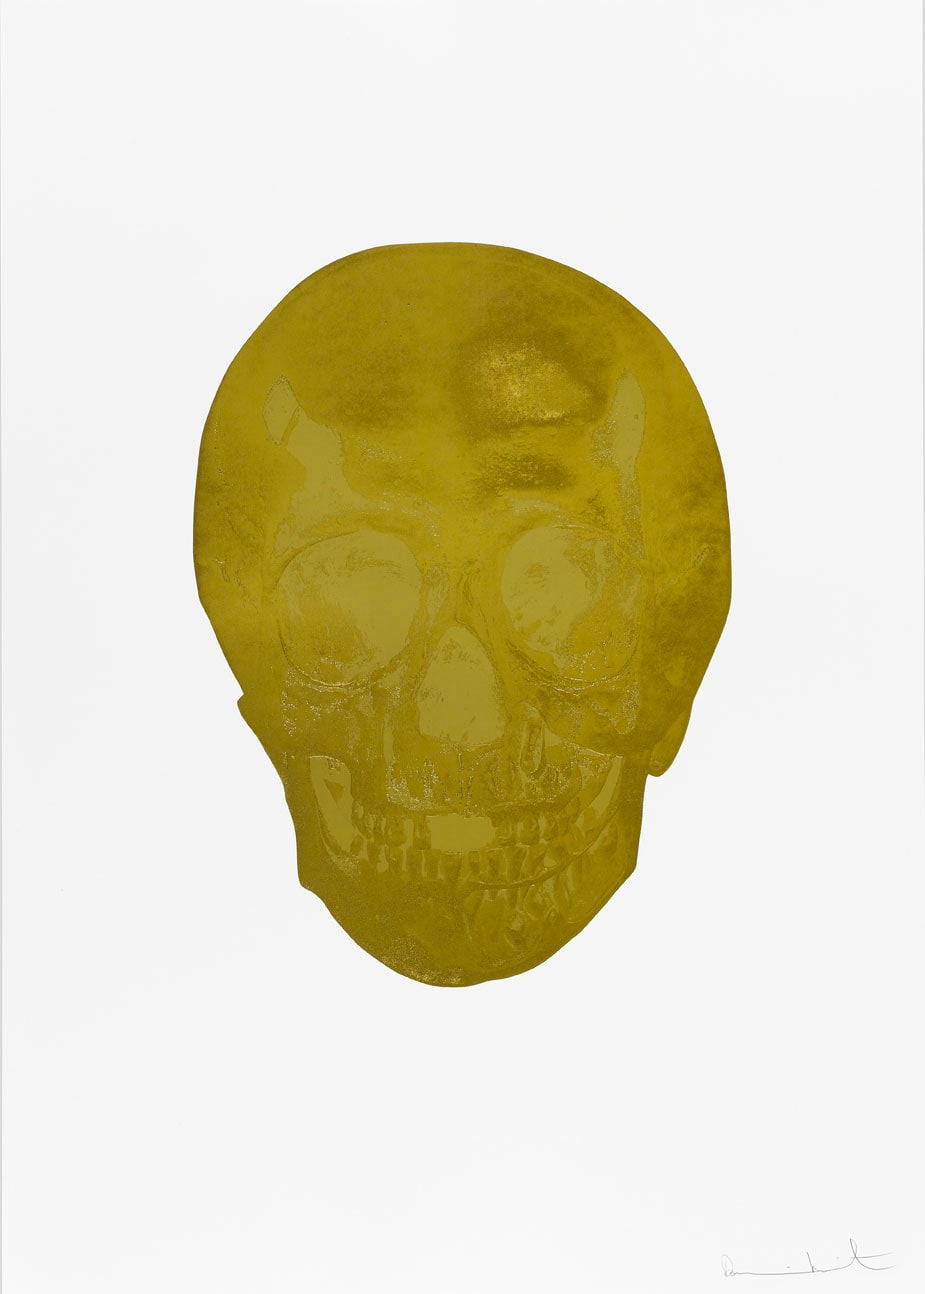 Damien Hirst Death Or Glory African Gold/Hazy Gold Glorious Skull, 2011 2 colour foil block on 300gsm Arches 88 archival paper. Signed and numbered. Published by Paul Stolper and Other Criteria. White aluminium powder coated frame. 72 x 51 cm; Framed 76.8 x 55.8 cm OC8377 Edition of 2